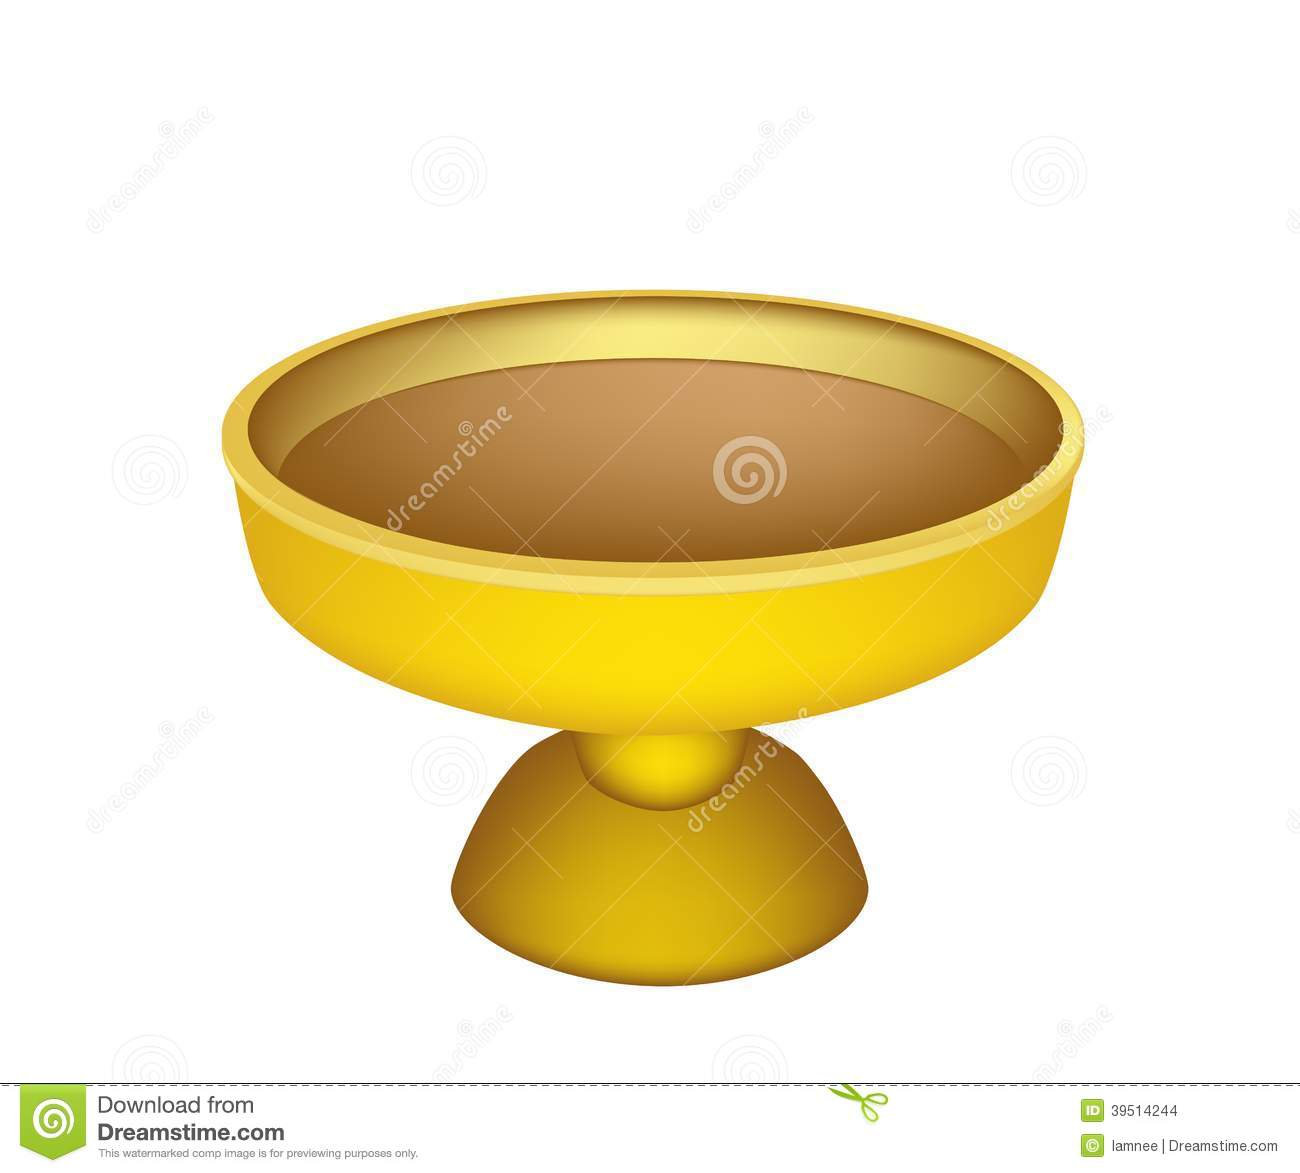 A Golden Tray with Pedestal on White Background